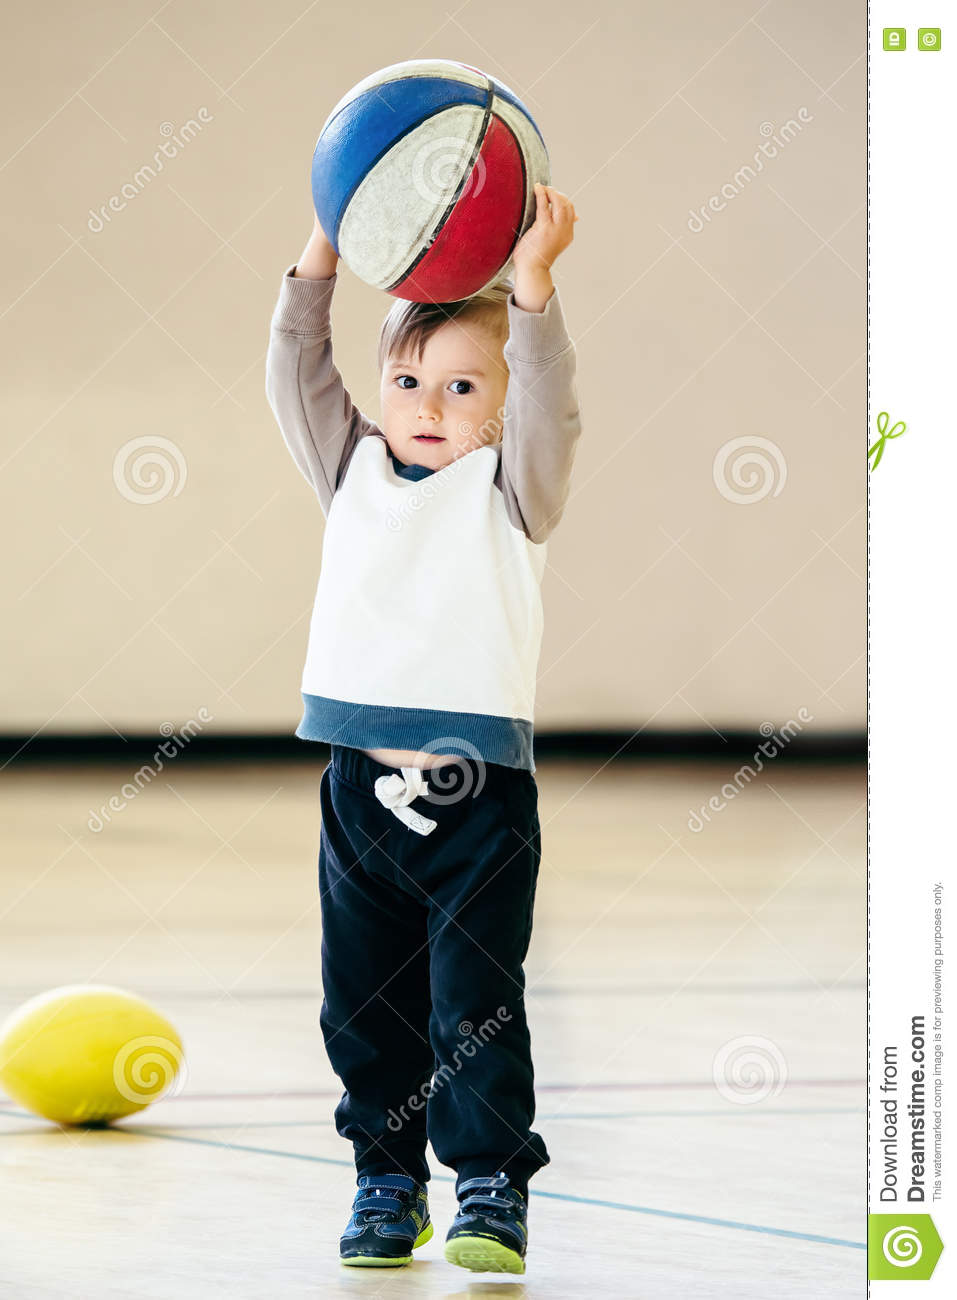 Cute adorable little small white Caucasian child toddler boy playing with ball basketball in gym on plain white light background